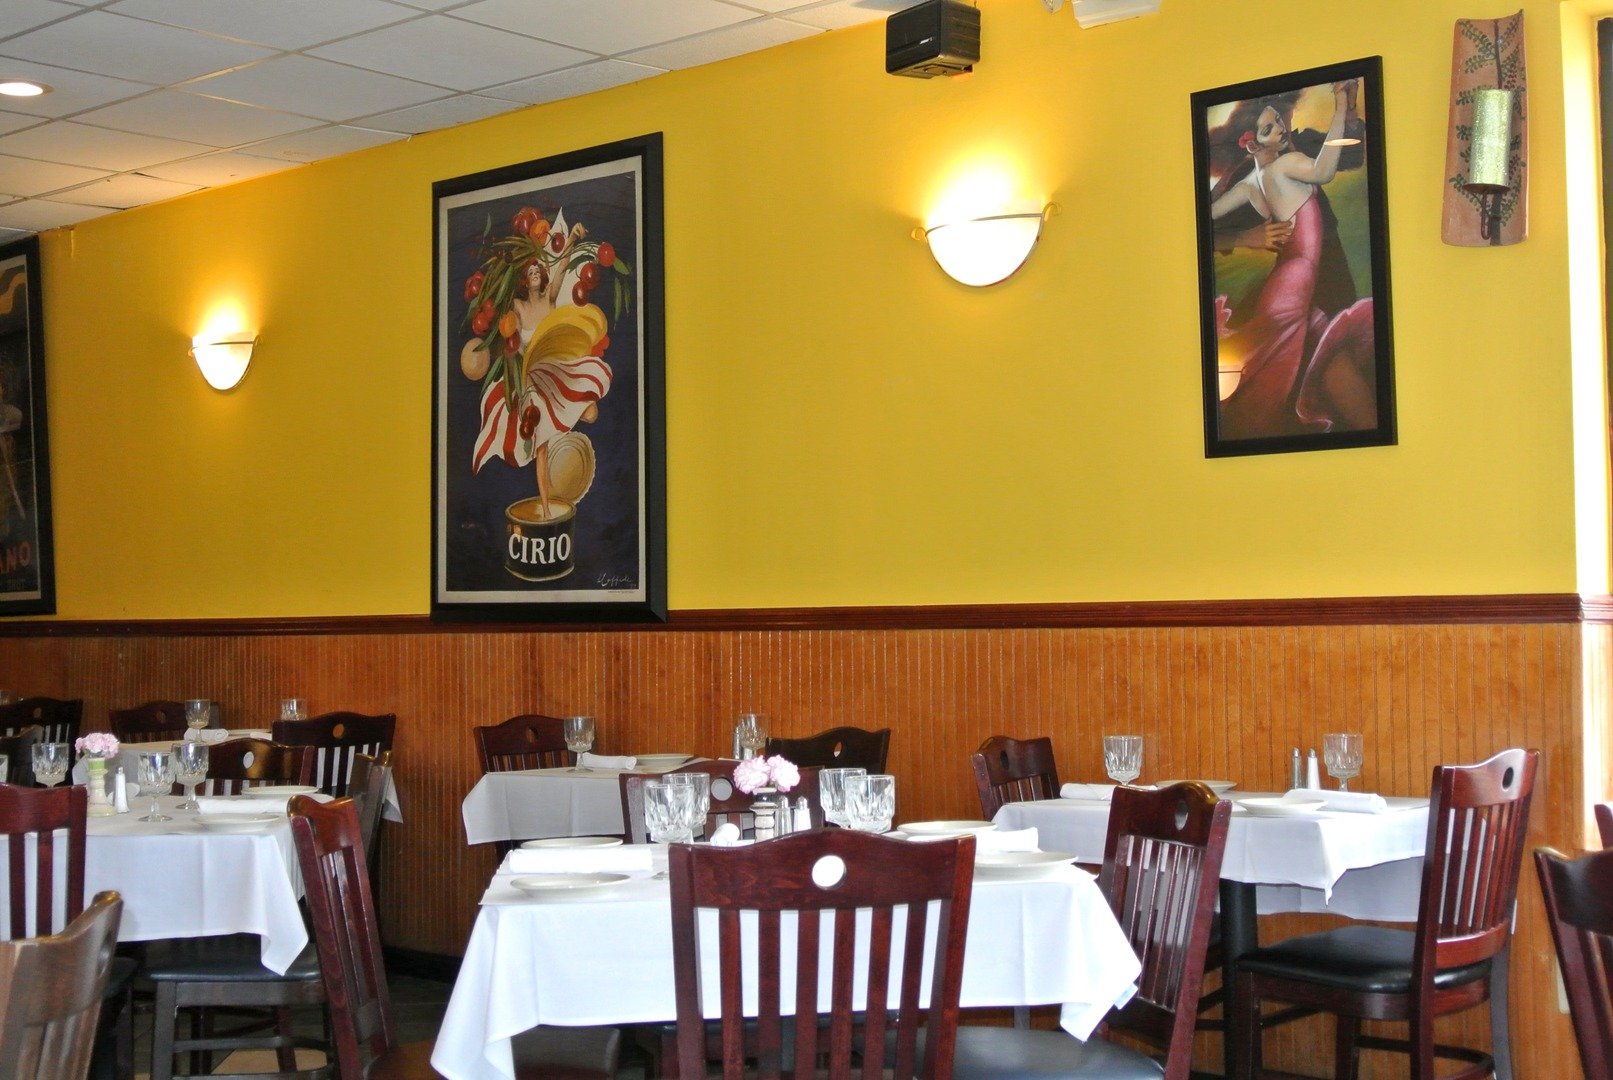 Empty set up tables in a restaurant with yellow walls and festive wall art